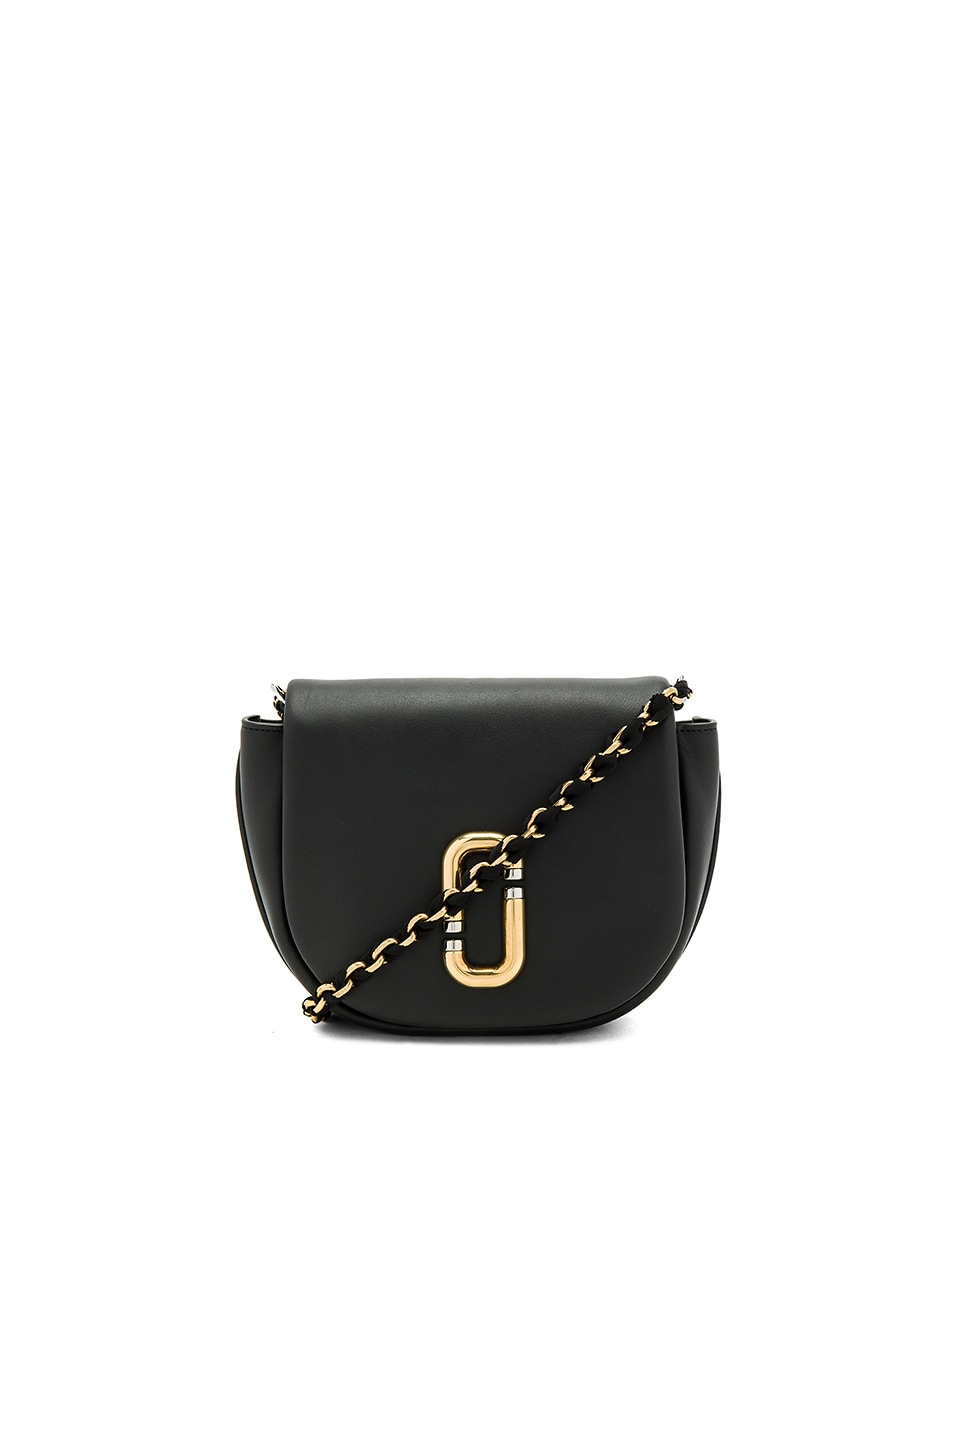 Kiki Crossbody by Marc Jacobs